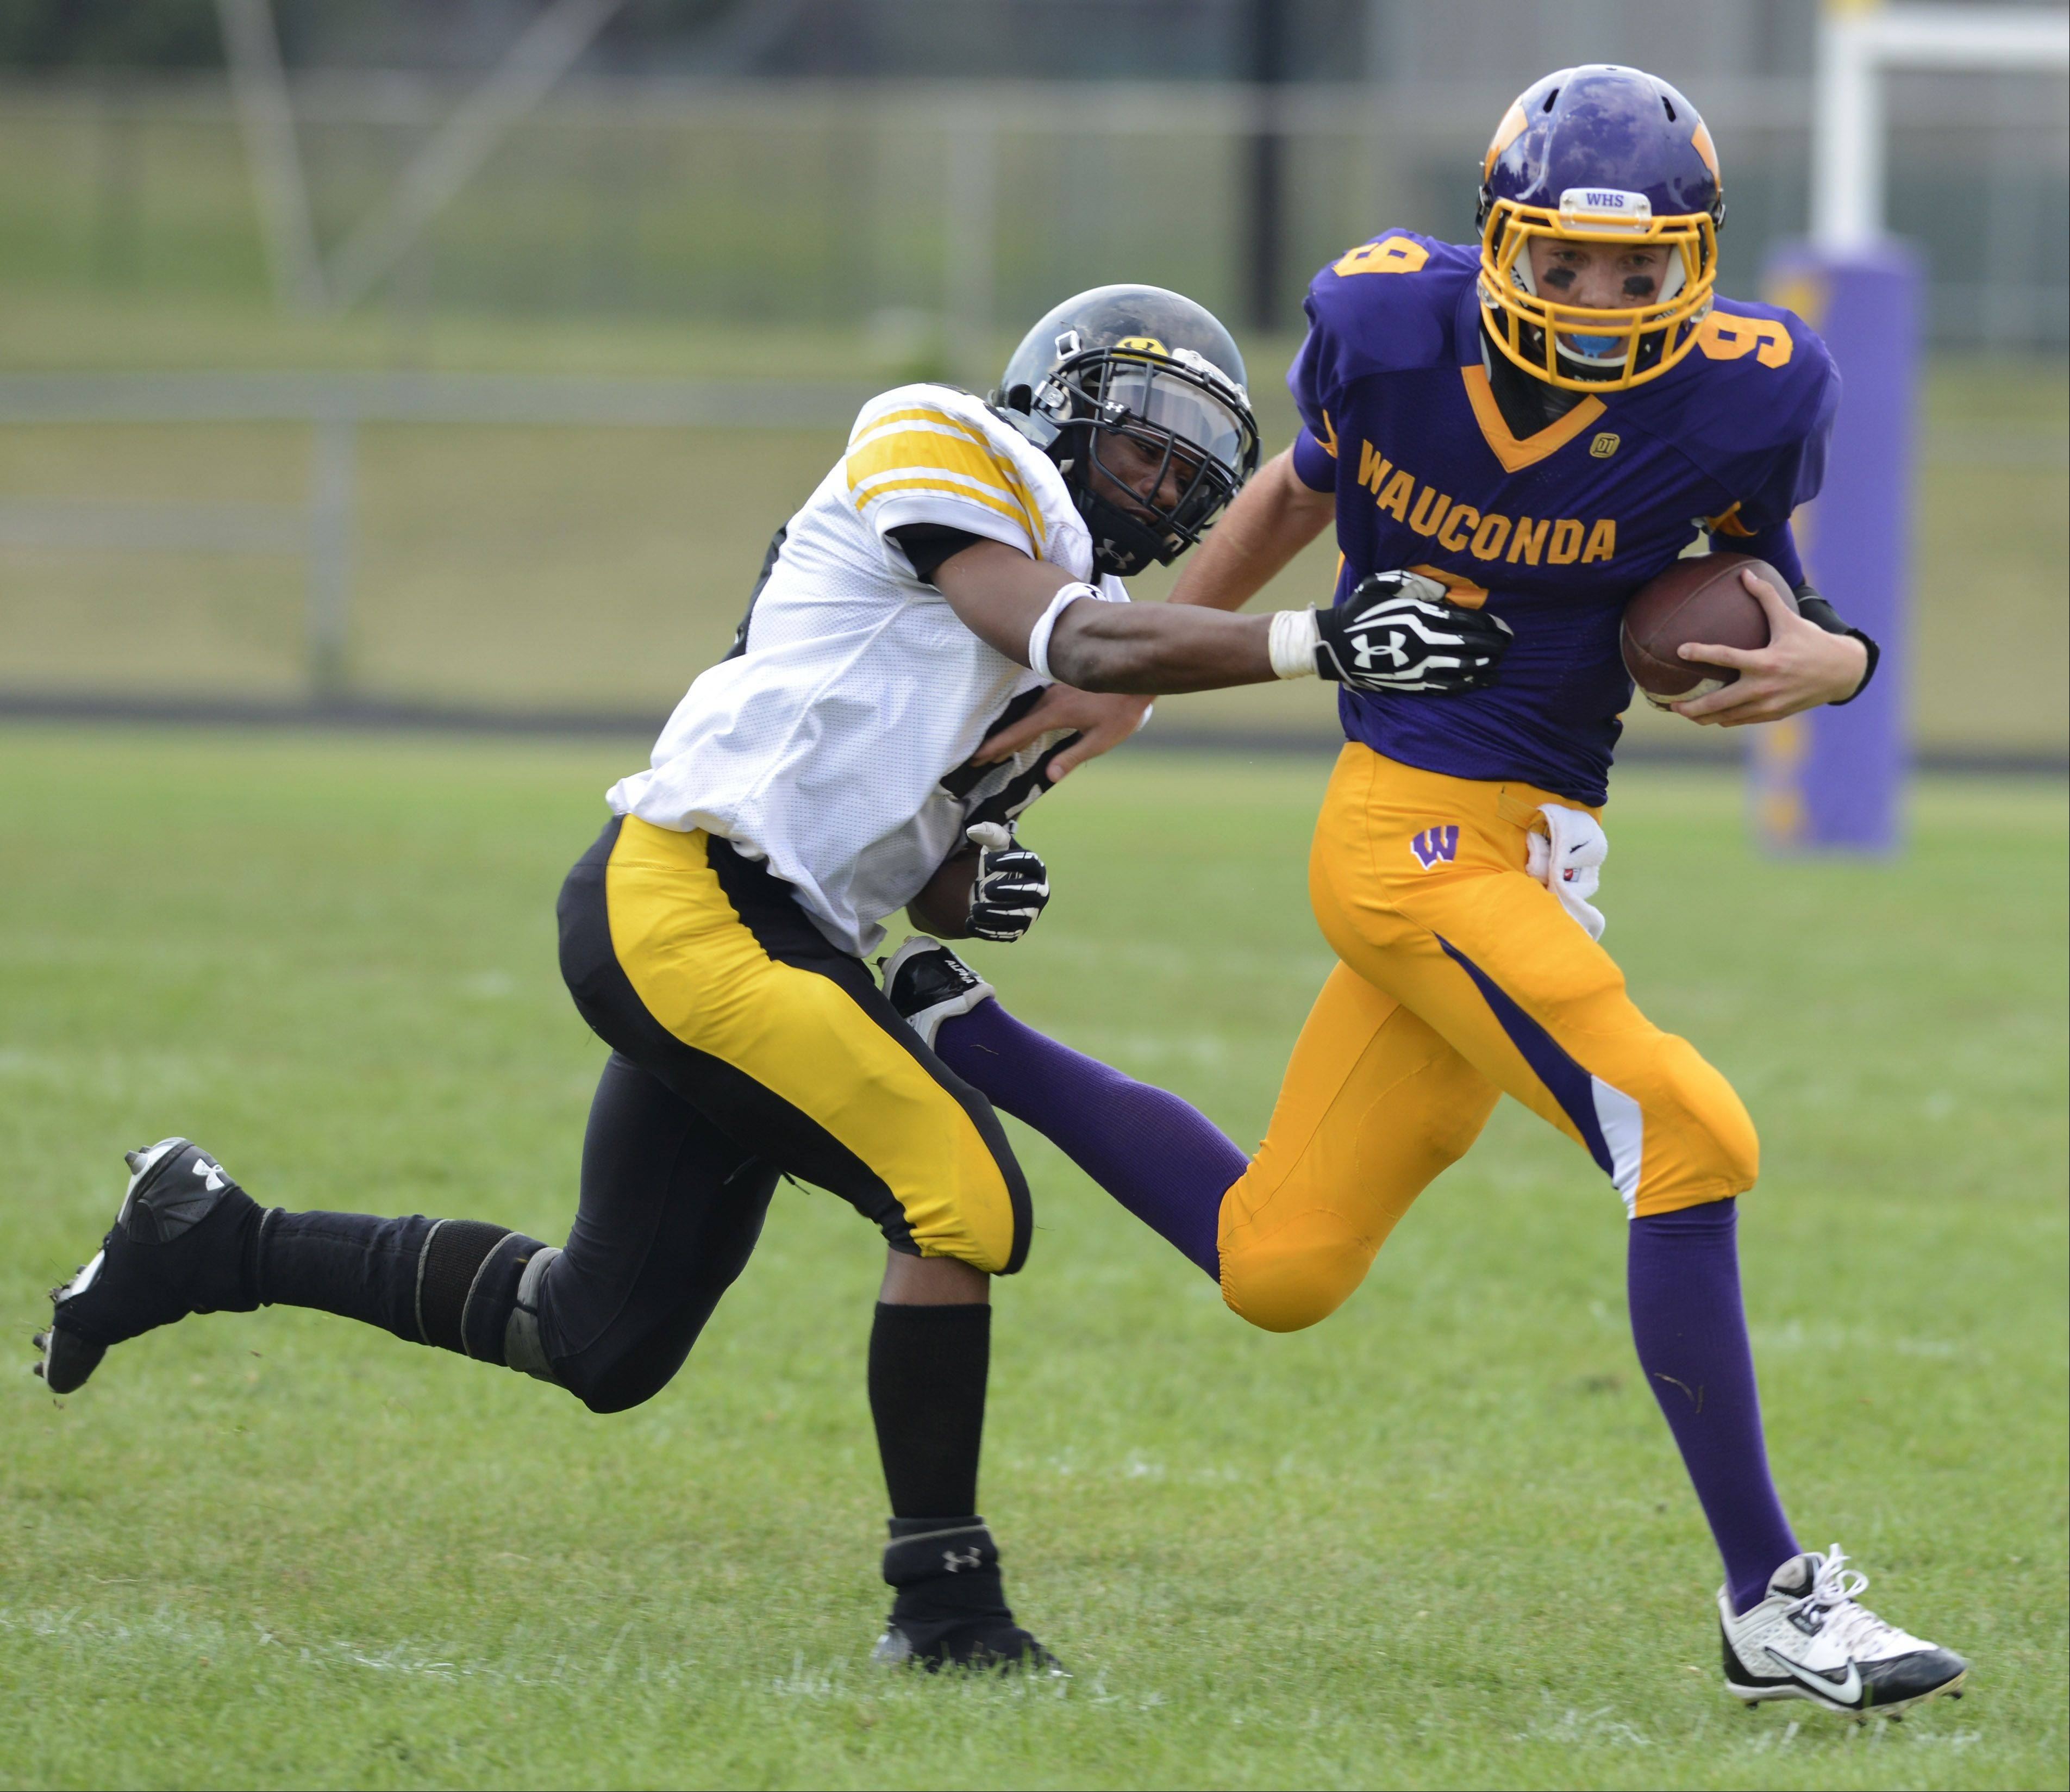 Wauconda quarterback Kevin Malisheski carries the ball while being pursued by Orr's TyShawn Bailey during Saturday's game.